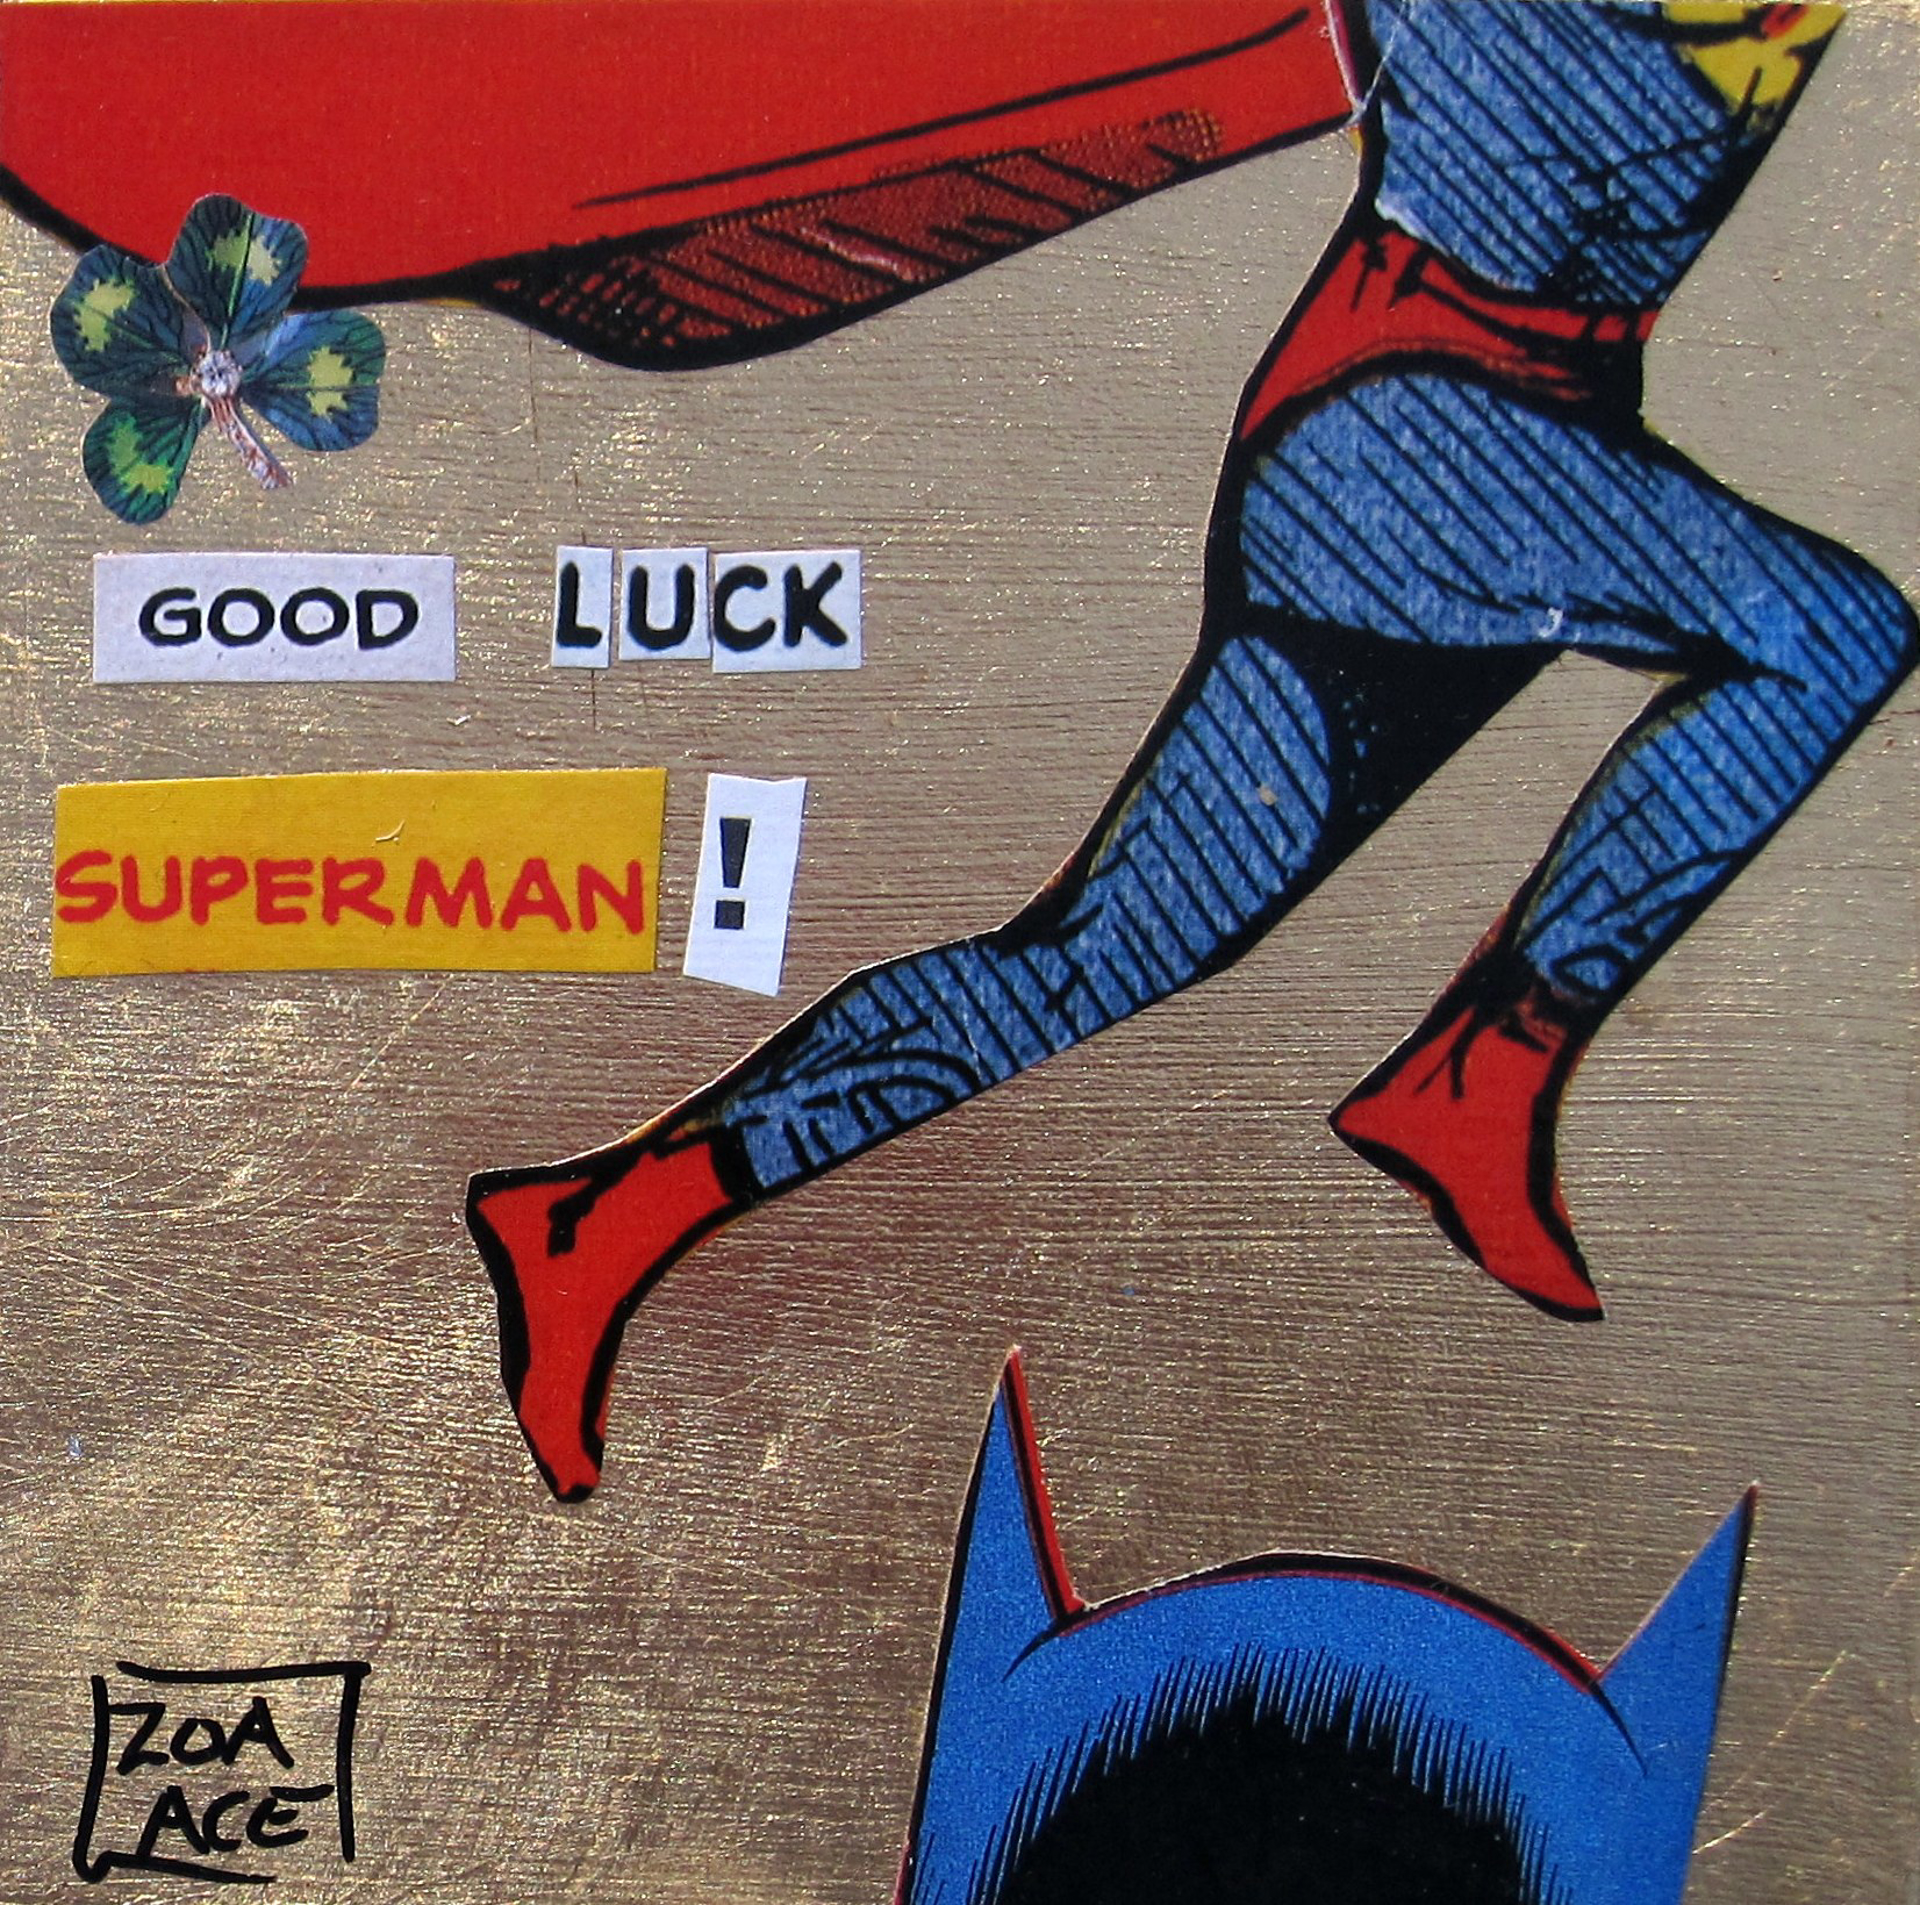 Good Luck, Superman! by Zoa Ace